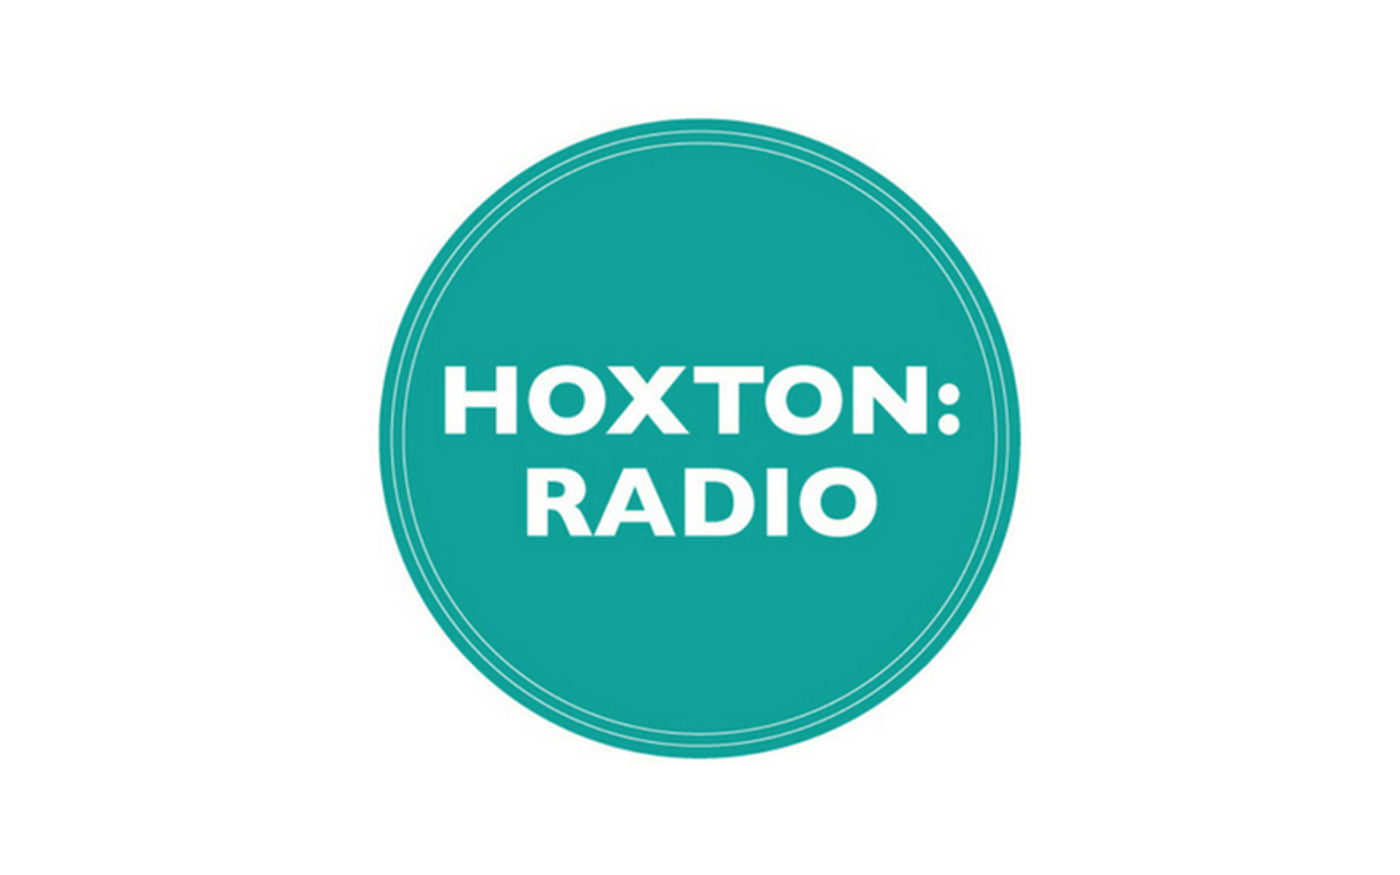 Hoxton radio logo green and white